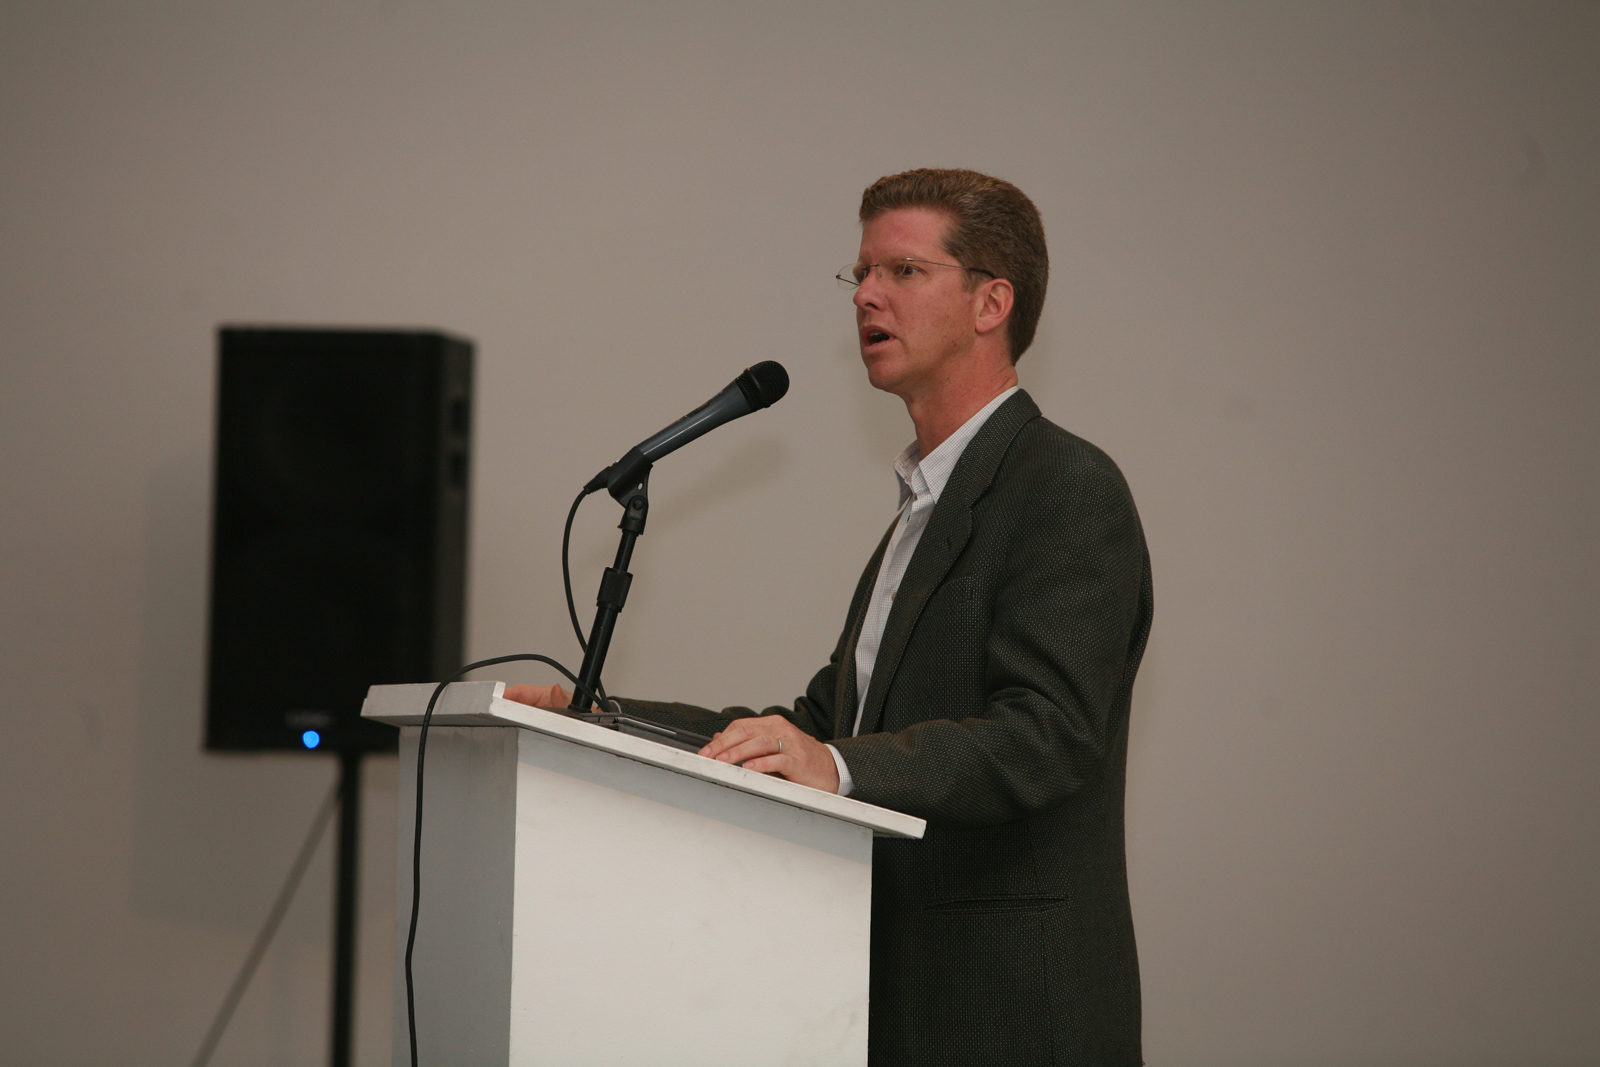 """Following the project presentations, U.S. Secretary of Housing and Urban Development Shaun Donovan delivered his address """"From Crisis to Opportunity: Rebuilding Communities in the Wake of Foreclosure."""""""